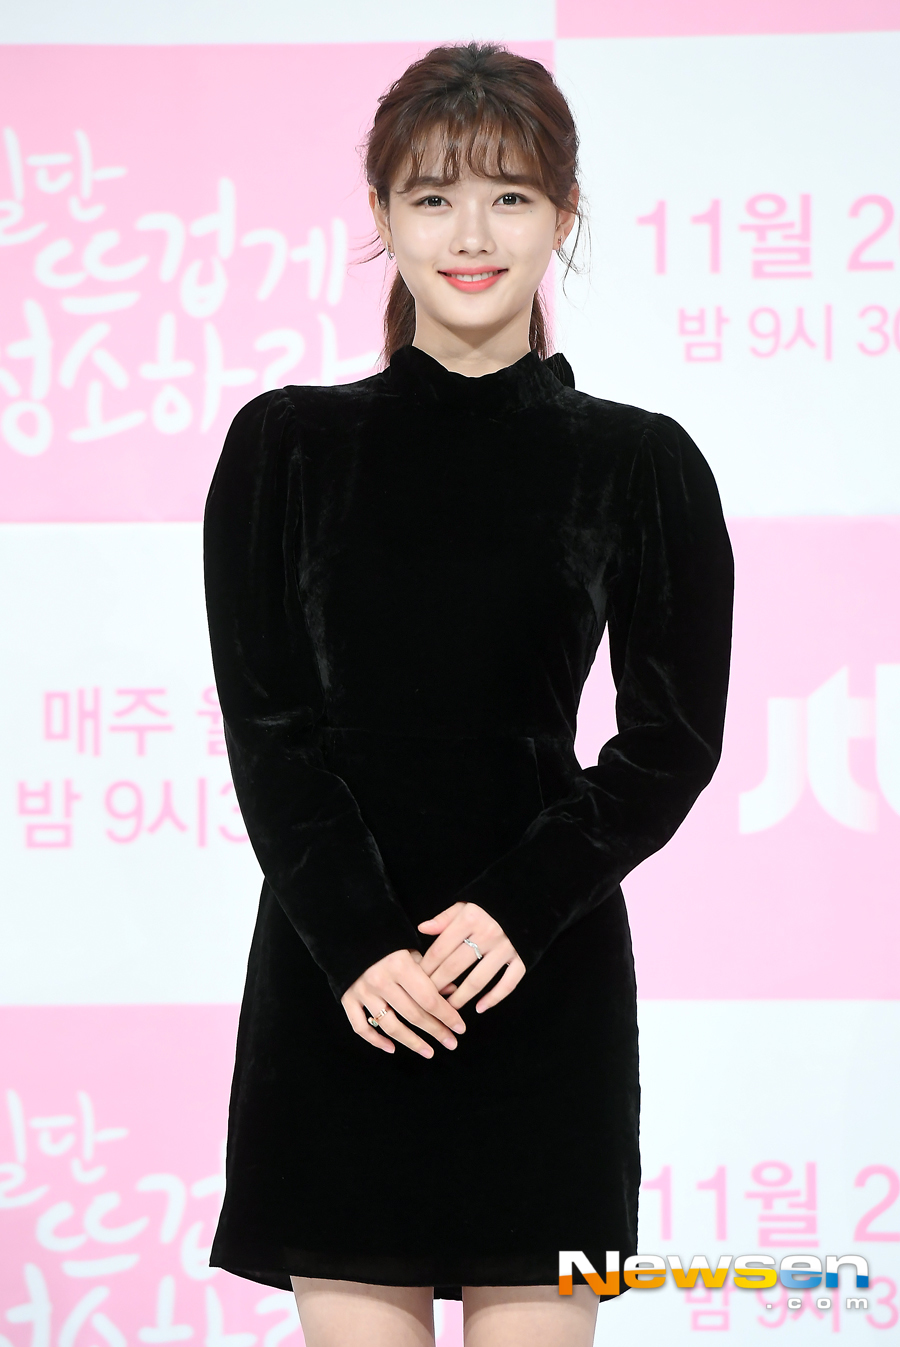 <p>JTBCs new Monday-Tuesday tale drama once hot, clean(pole for hee/rendering nodes final) production presentation 11 26, 2pm at Seoul Yeongdeungpo-GU Yeongdeungpo Times Square Juamorris Stewart Convention in progress.</p><p>This day, Kim Yoo-jung In this pose.</p><p>Yoon Kyun-sang, Kim Yoo-jung, Song Jae-Rim, Kim Min-kyu, student, car, etc starring once hot, clean theclean life more important than Hotties cleaning companies CEO joists(Yoon Kyun-sang)and cleanliness than your survival first passionate gardeners to take the standard way of life. Sol(Kim Yoo-jung)In this meet and expand the 'sterile then' healing romance.</p>